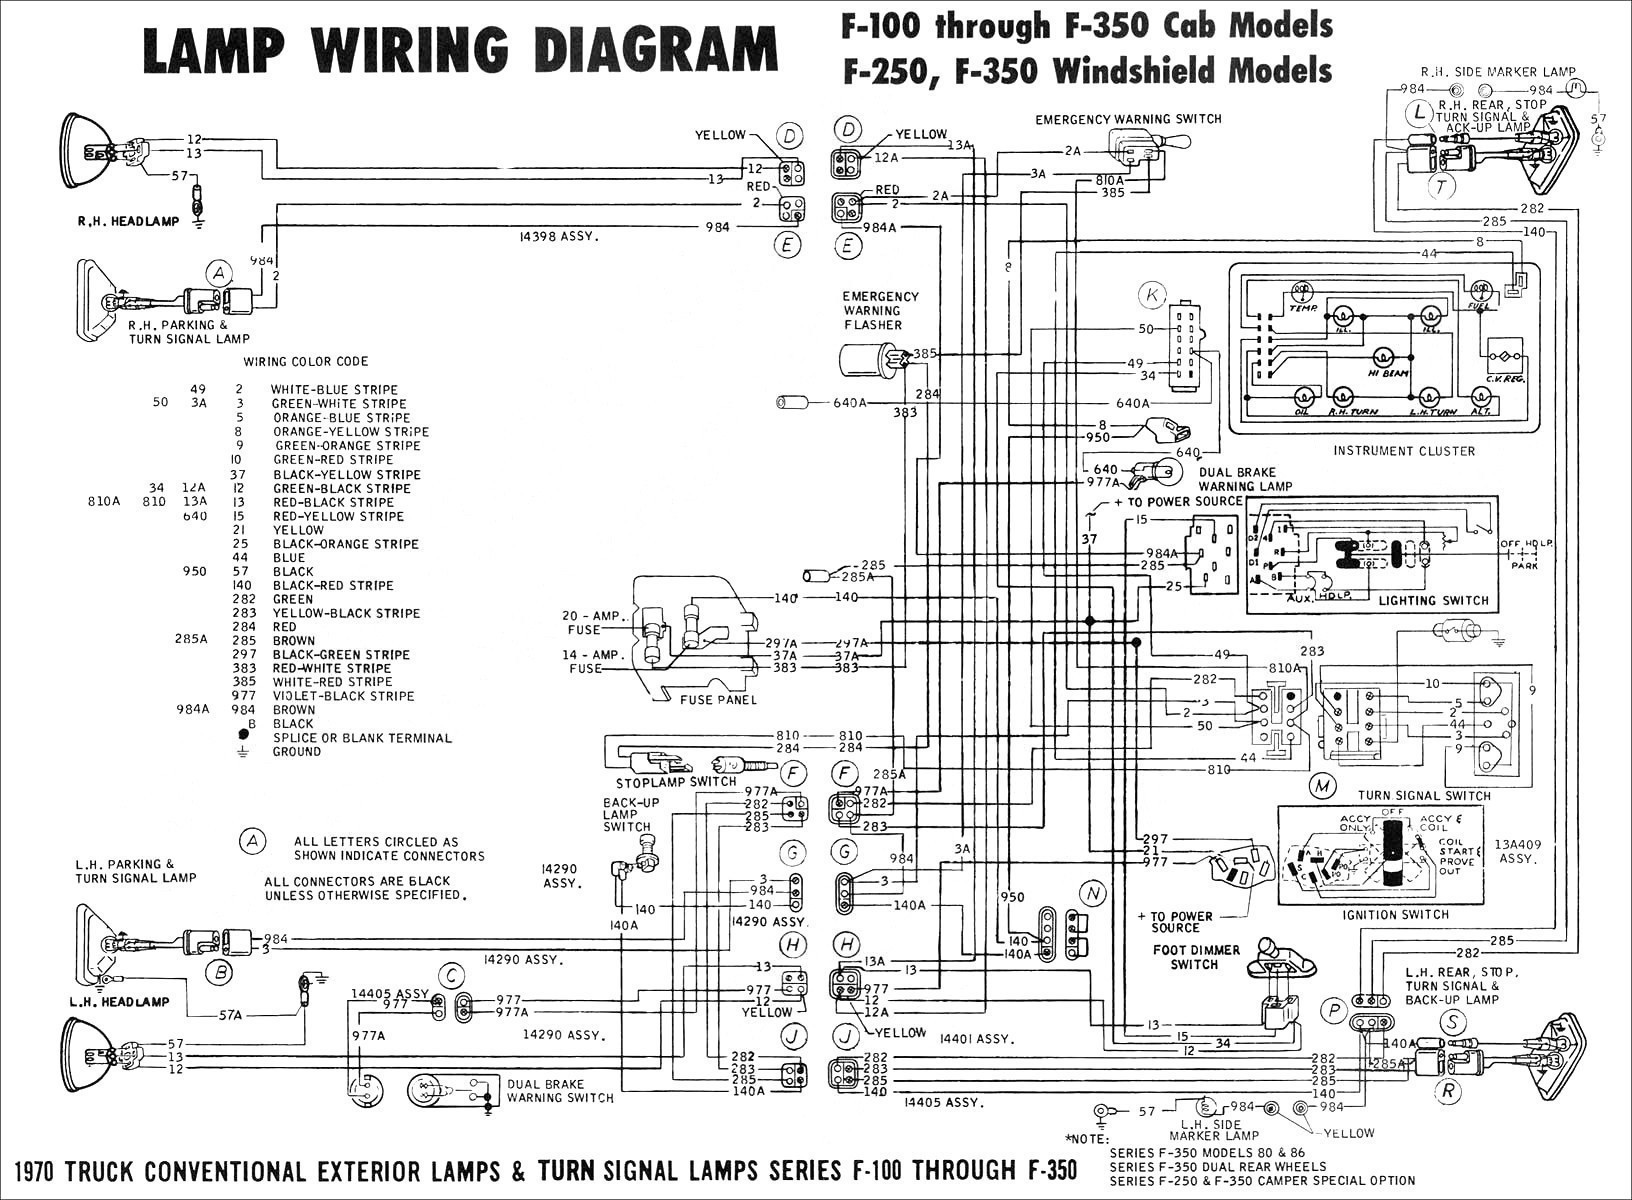 Audi B5 Wiring Diagram - Grade 5 Circuit Diagrams for Wiring Diagram  Schematics | Audi B5 Engine Wire Diagram |  | Wiring Diagram Schematics